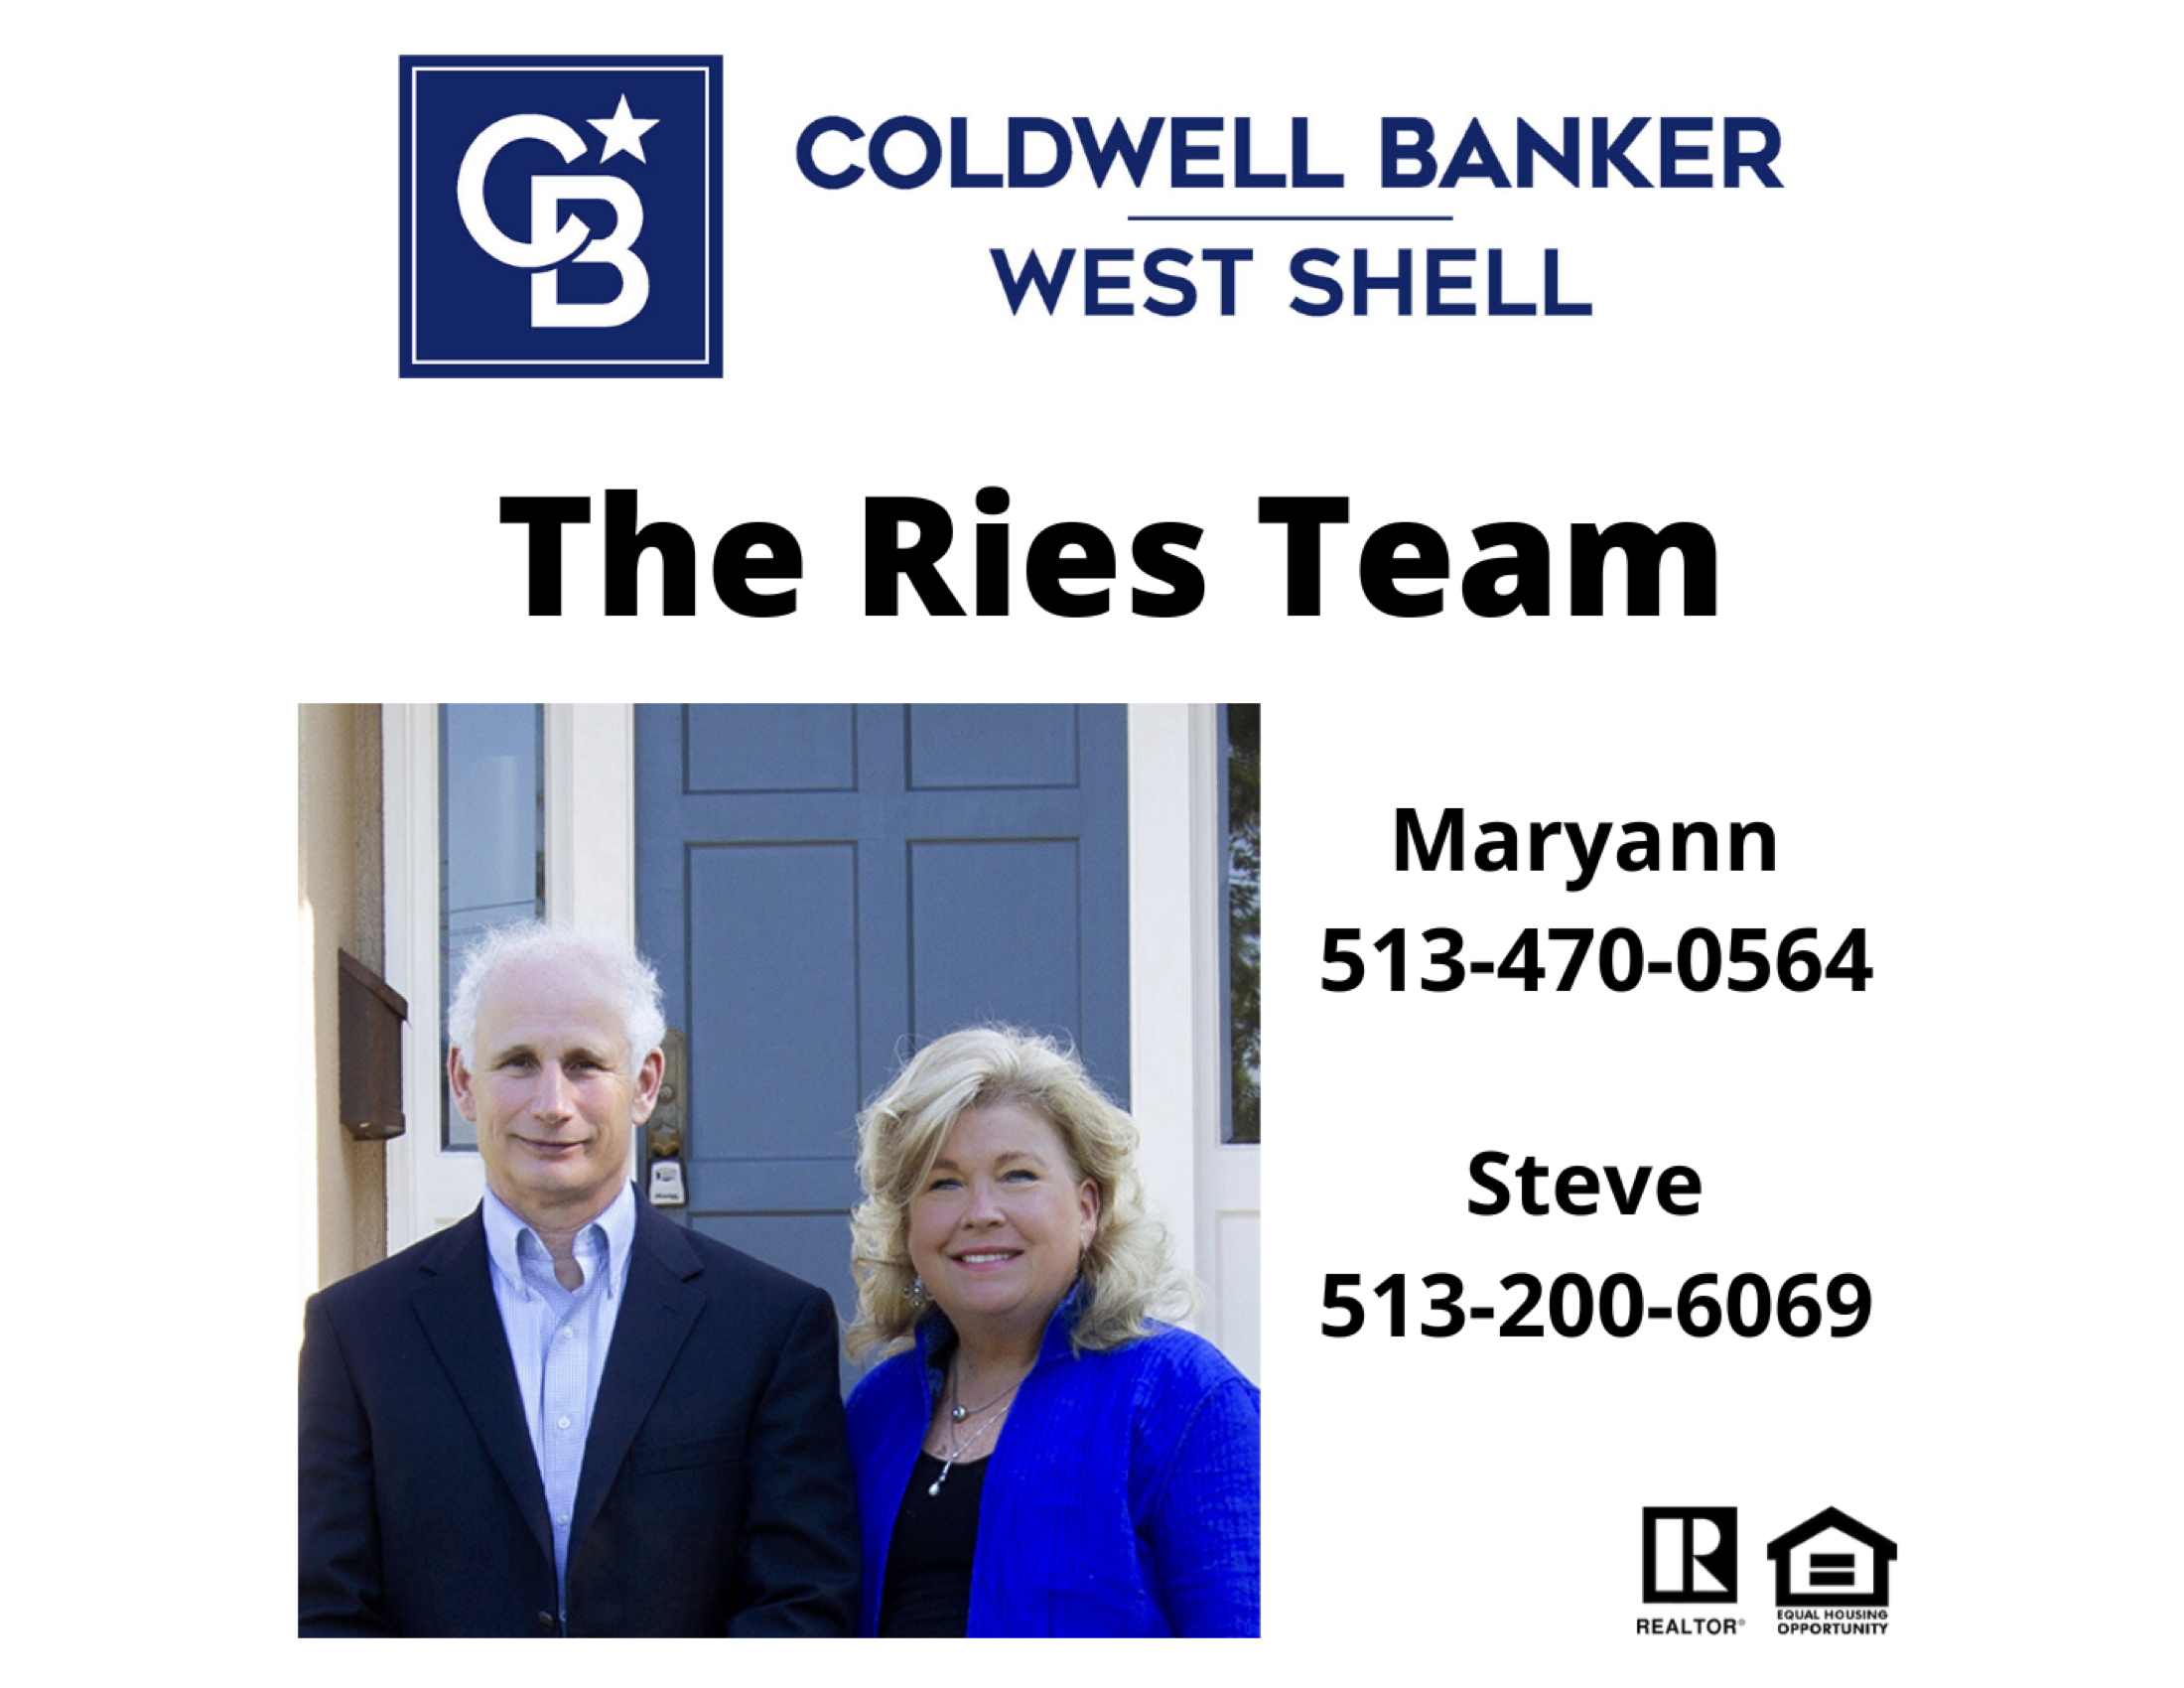 Ries Team, Coldwell Banker/West Shell